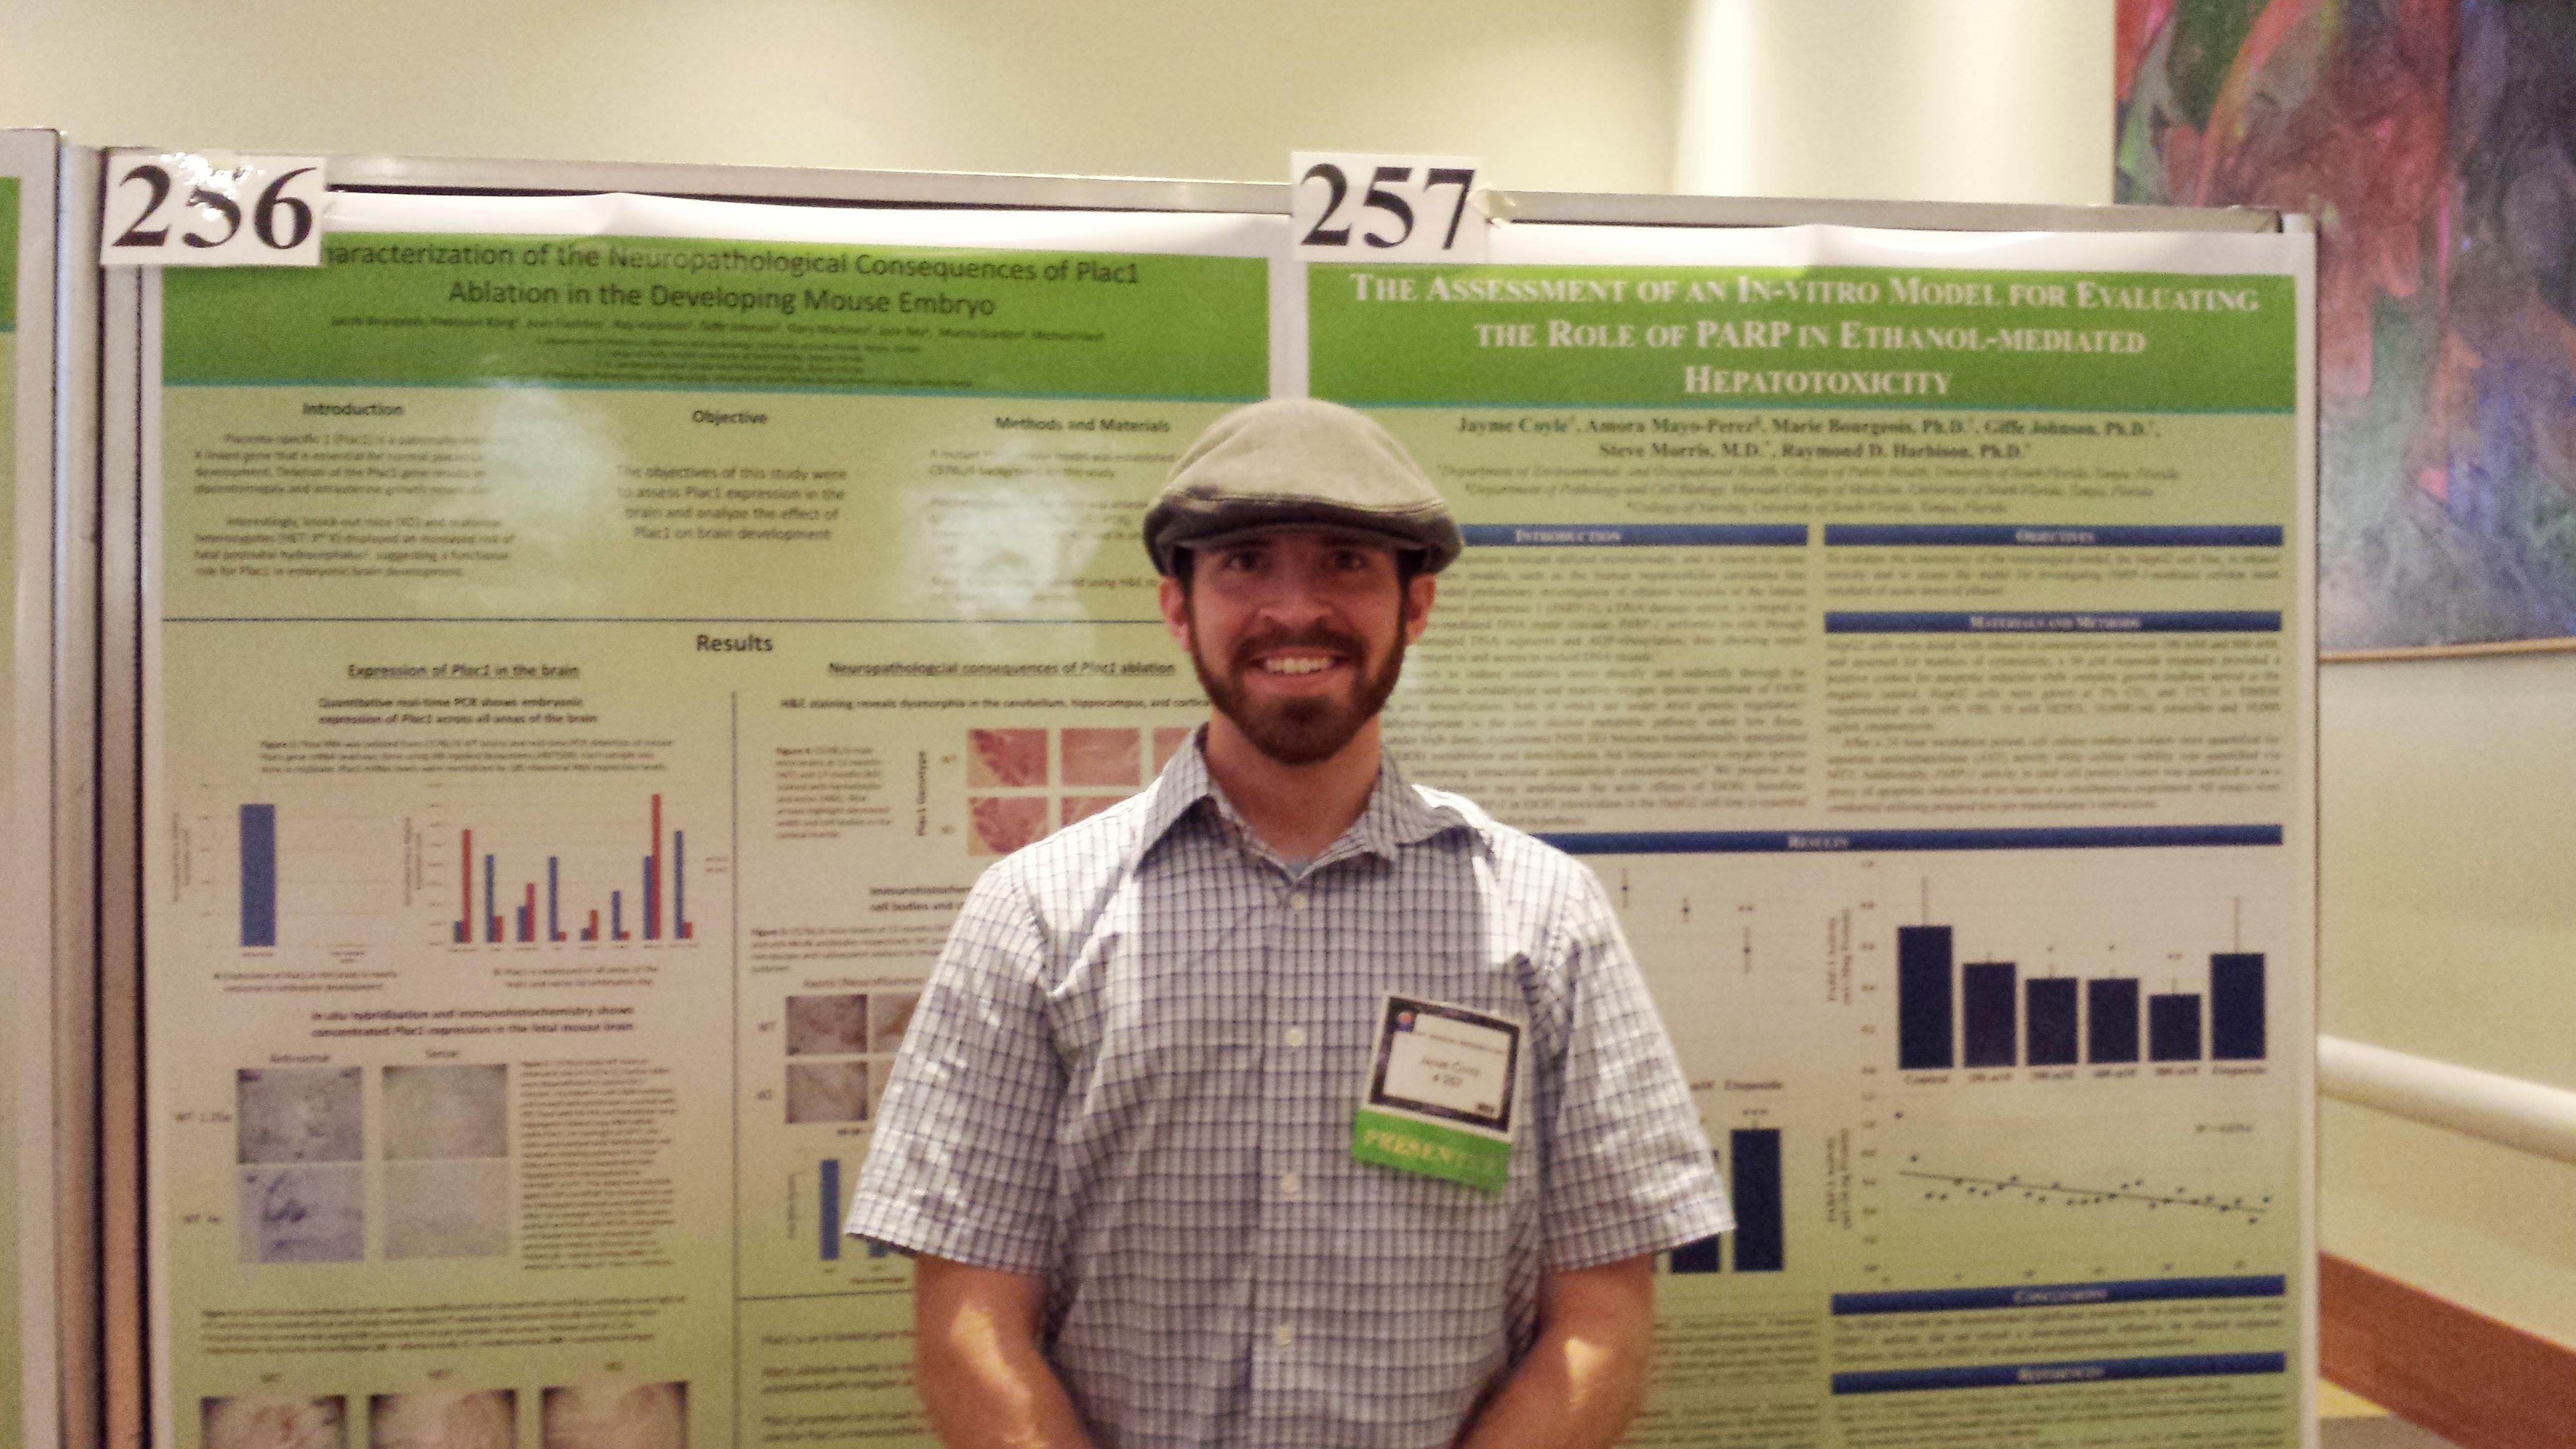 "Mr. Jayme Coyle, MSPH, won the Best COPH Poster Presentation for Environmental and Occupational Health. His poster titled ""The Assessment of an In Vitro Model for Evaluating the Role of PARP in Ethanol-Mediated Hepatotoxicity"" will also be presented at the Society of Toxicology meeting in Phoenix on March 24."